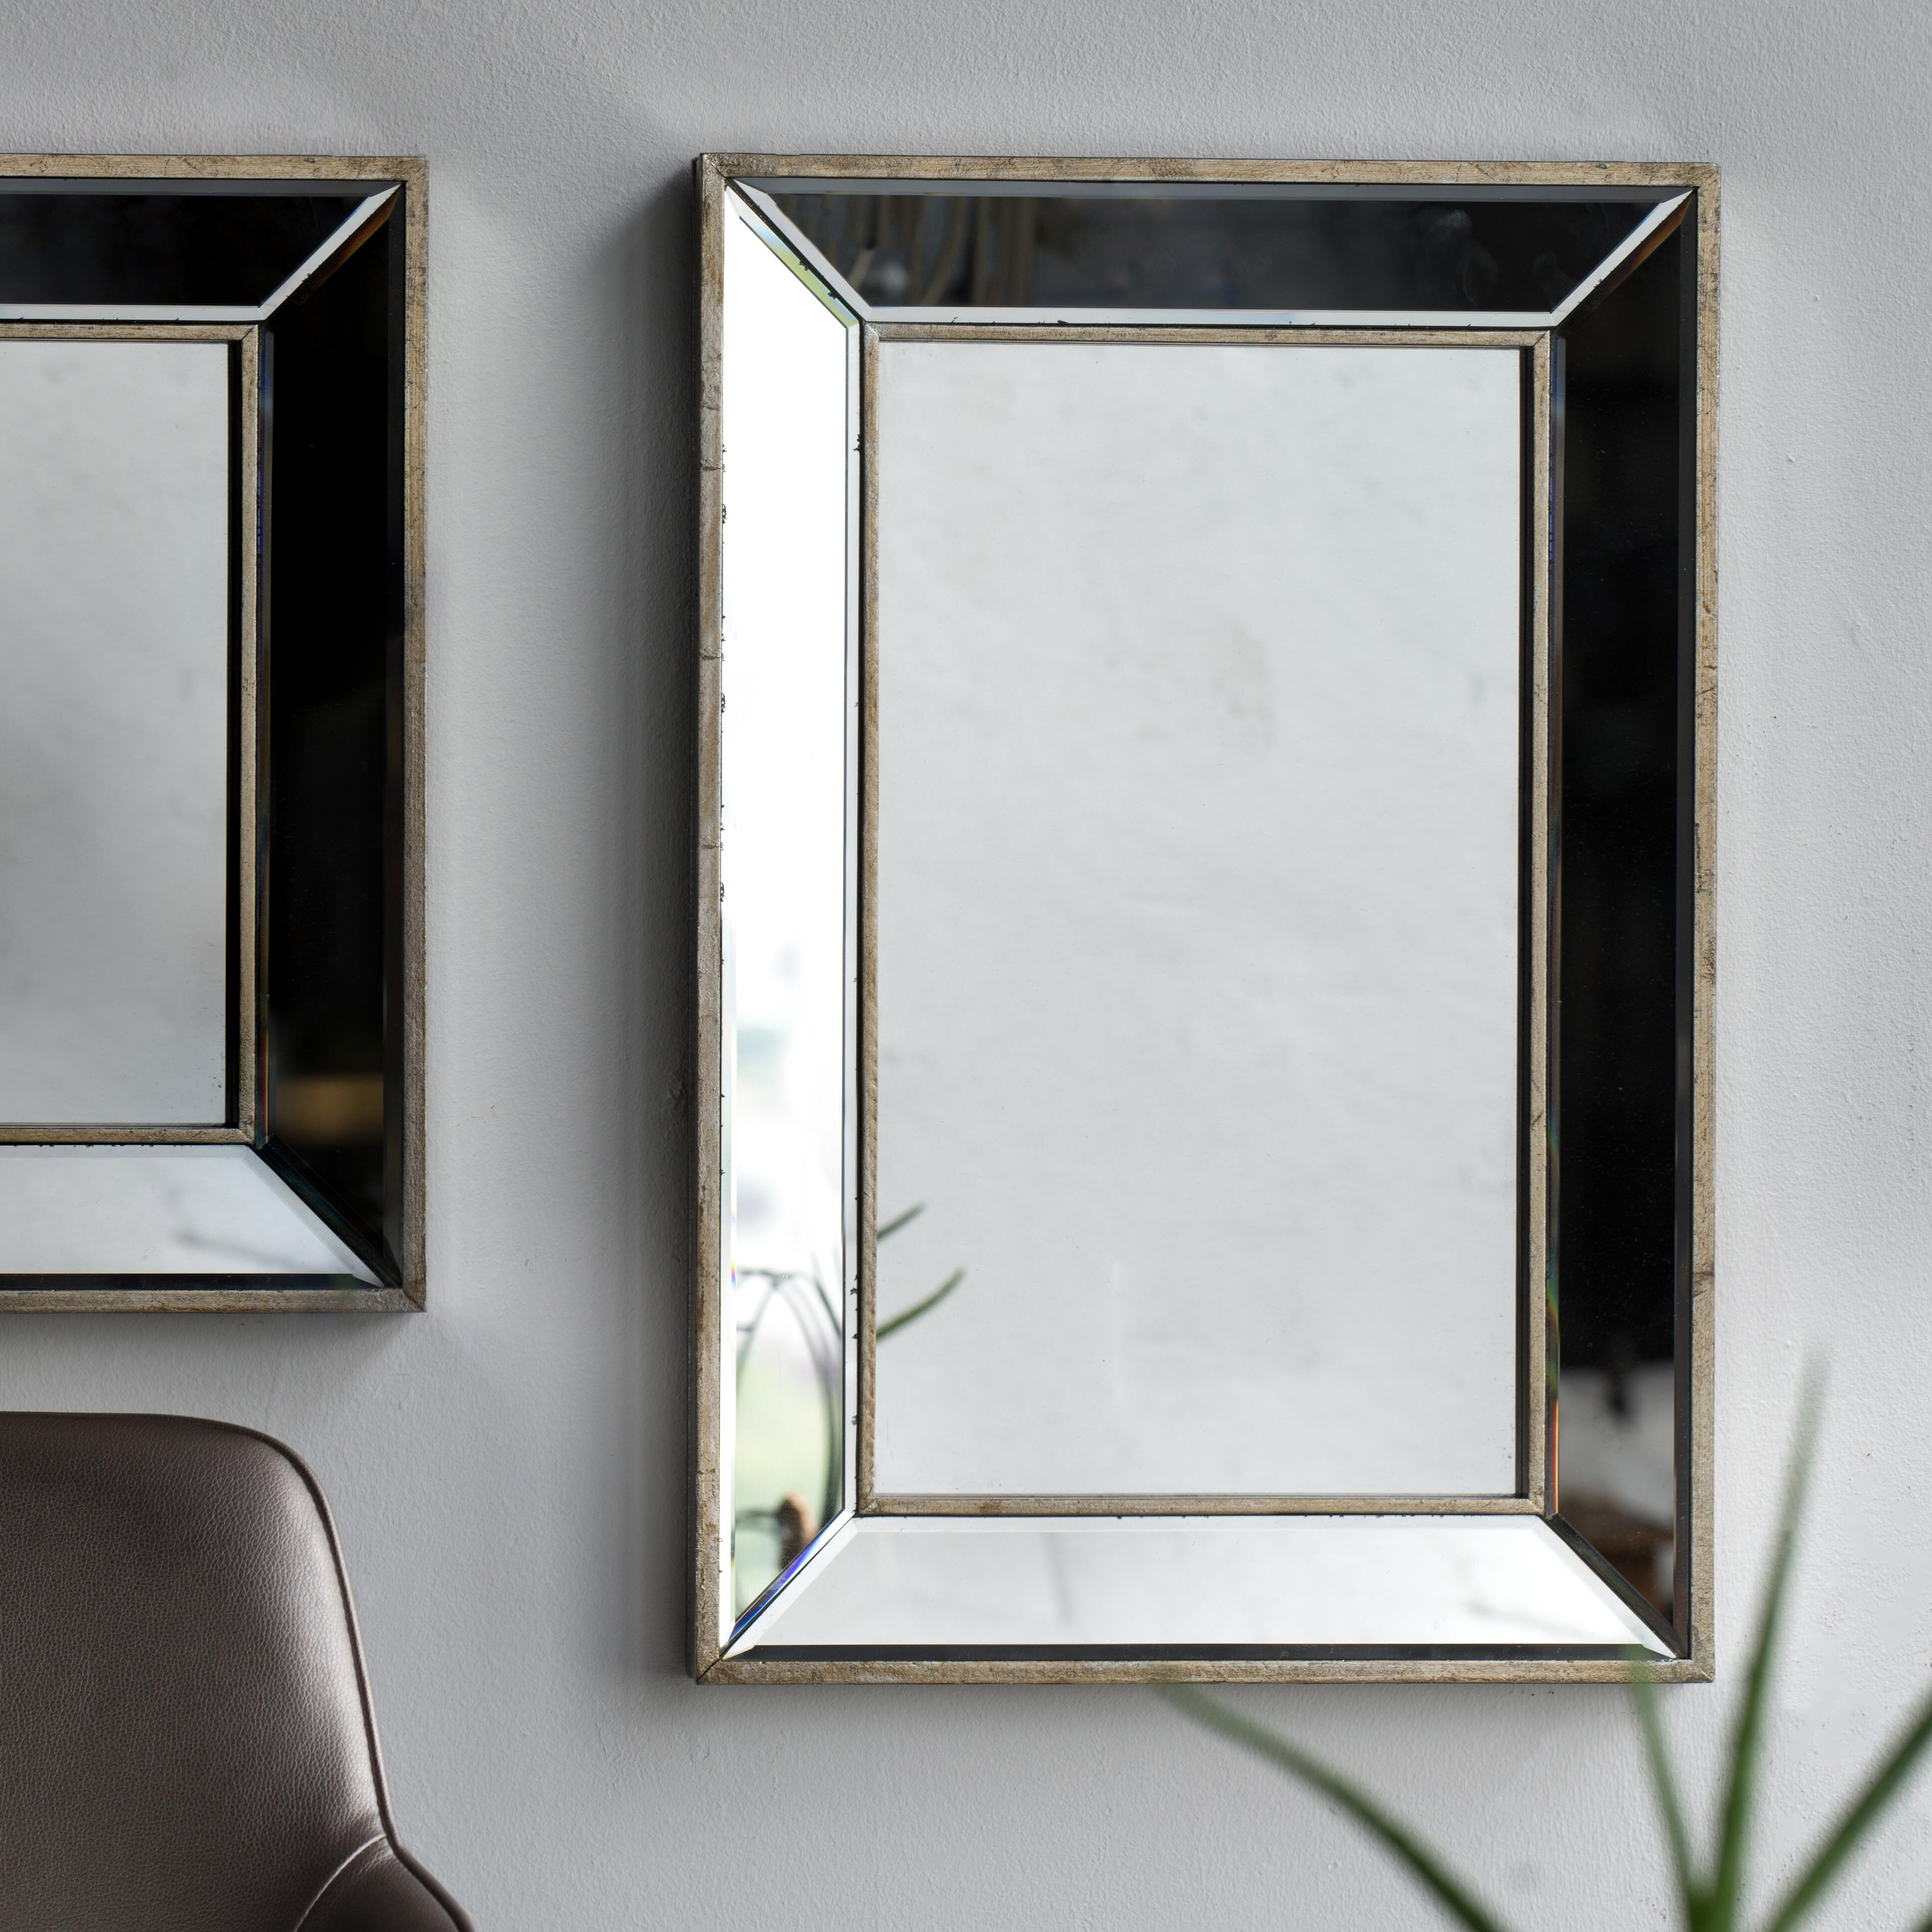 Kapp Rectangle Accent Wall Mirror Intended For Lake Park Beveled Beaded Accent Wall Mirrors (View 10 of 20)